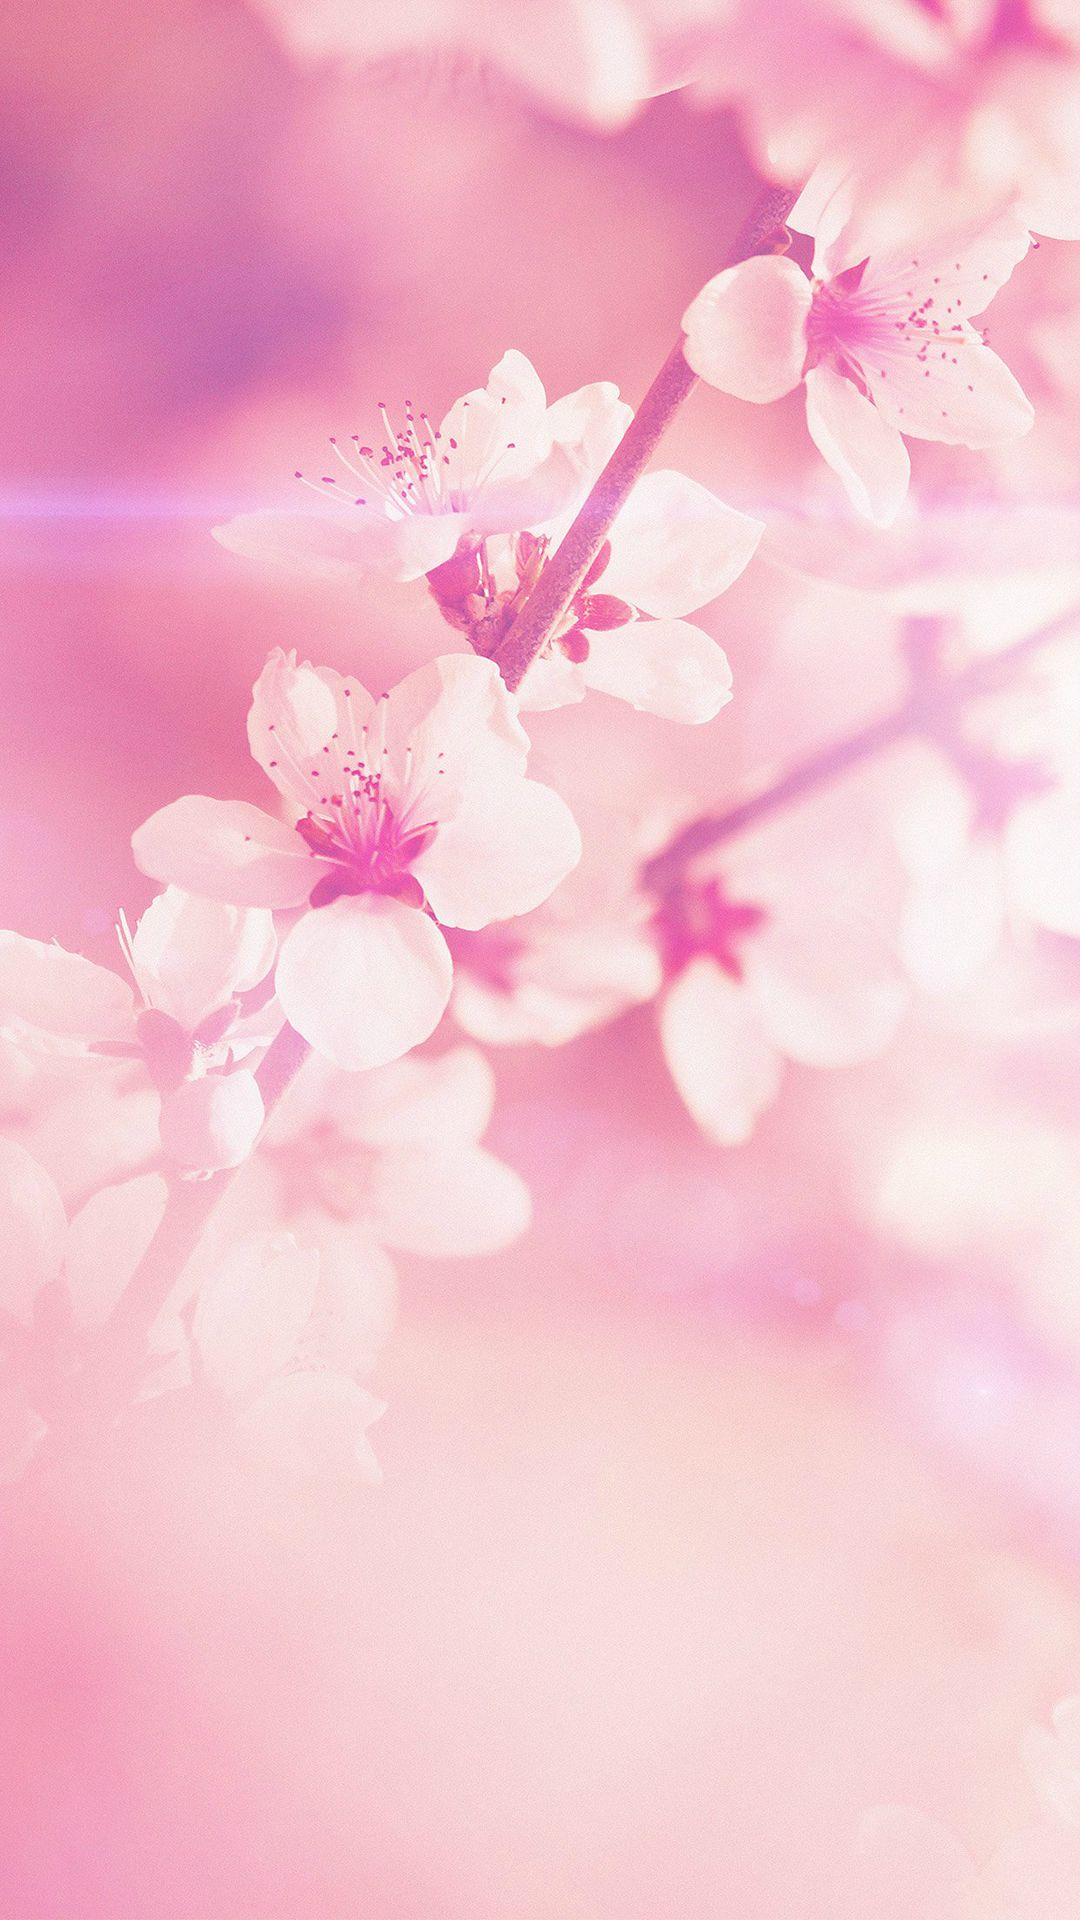 Pictures Of Flowers For Cell Phone Wallpaper Sazum Pinterest